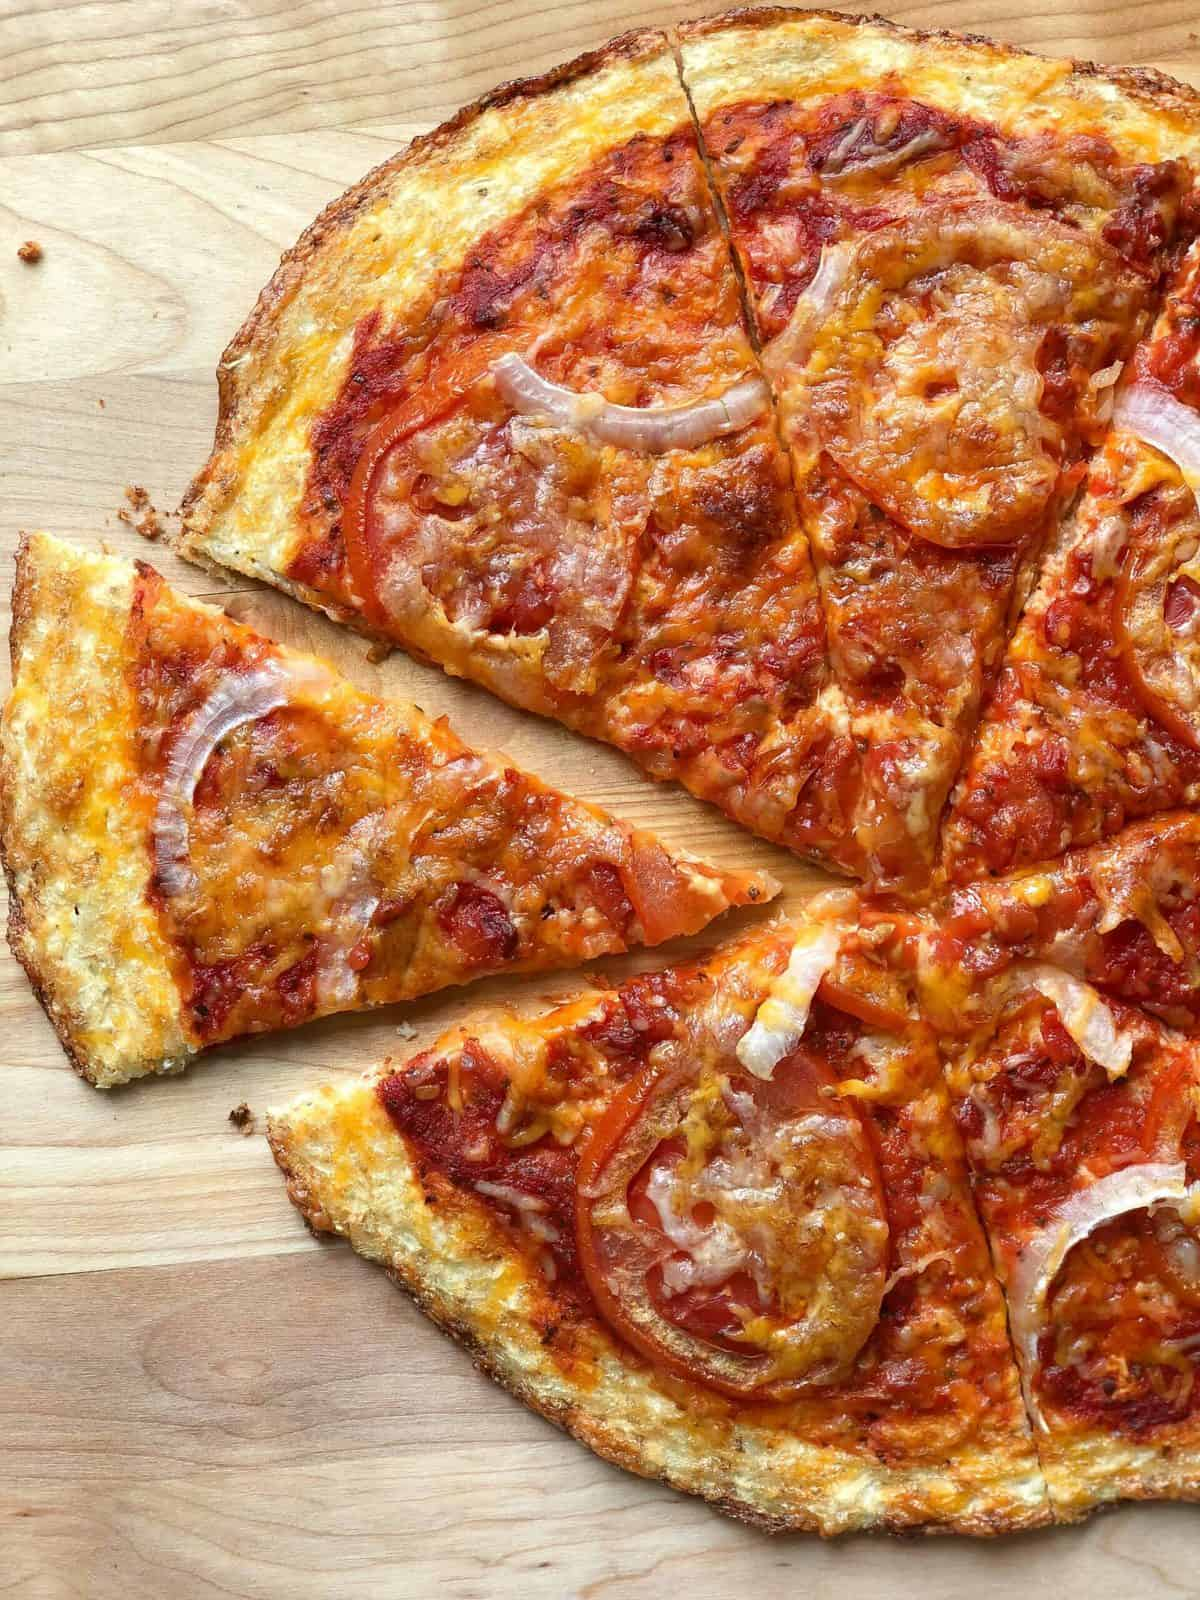 A slice of pizza sitting on top of a wooden cutting board, with Cheese and Crust